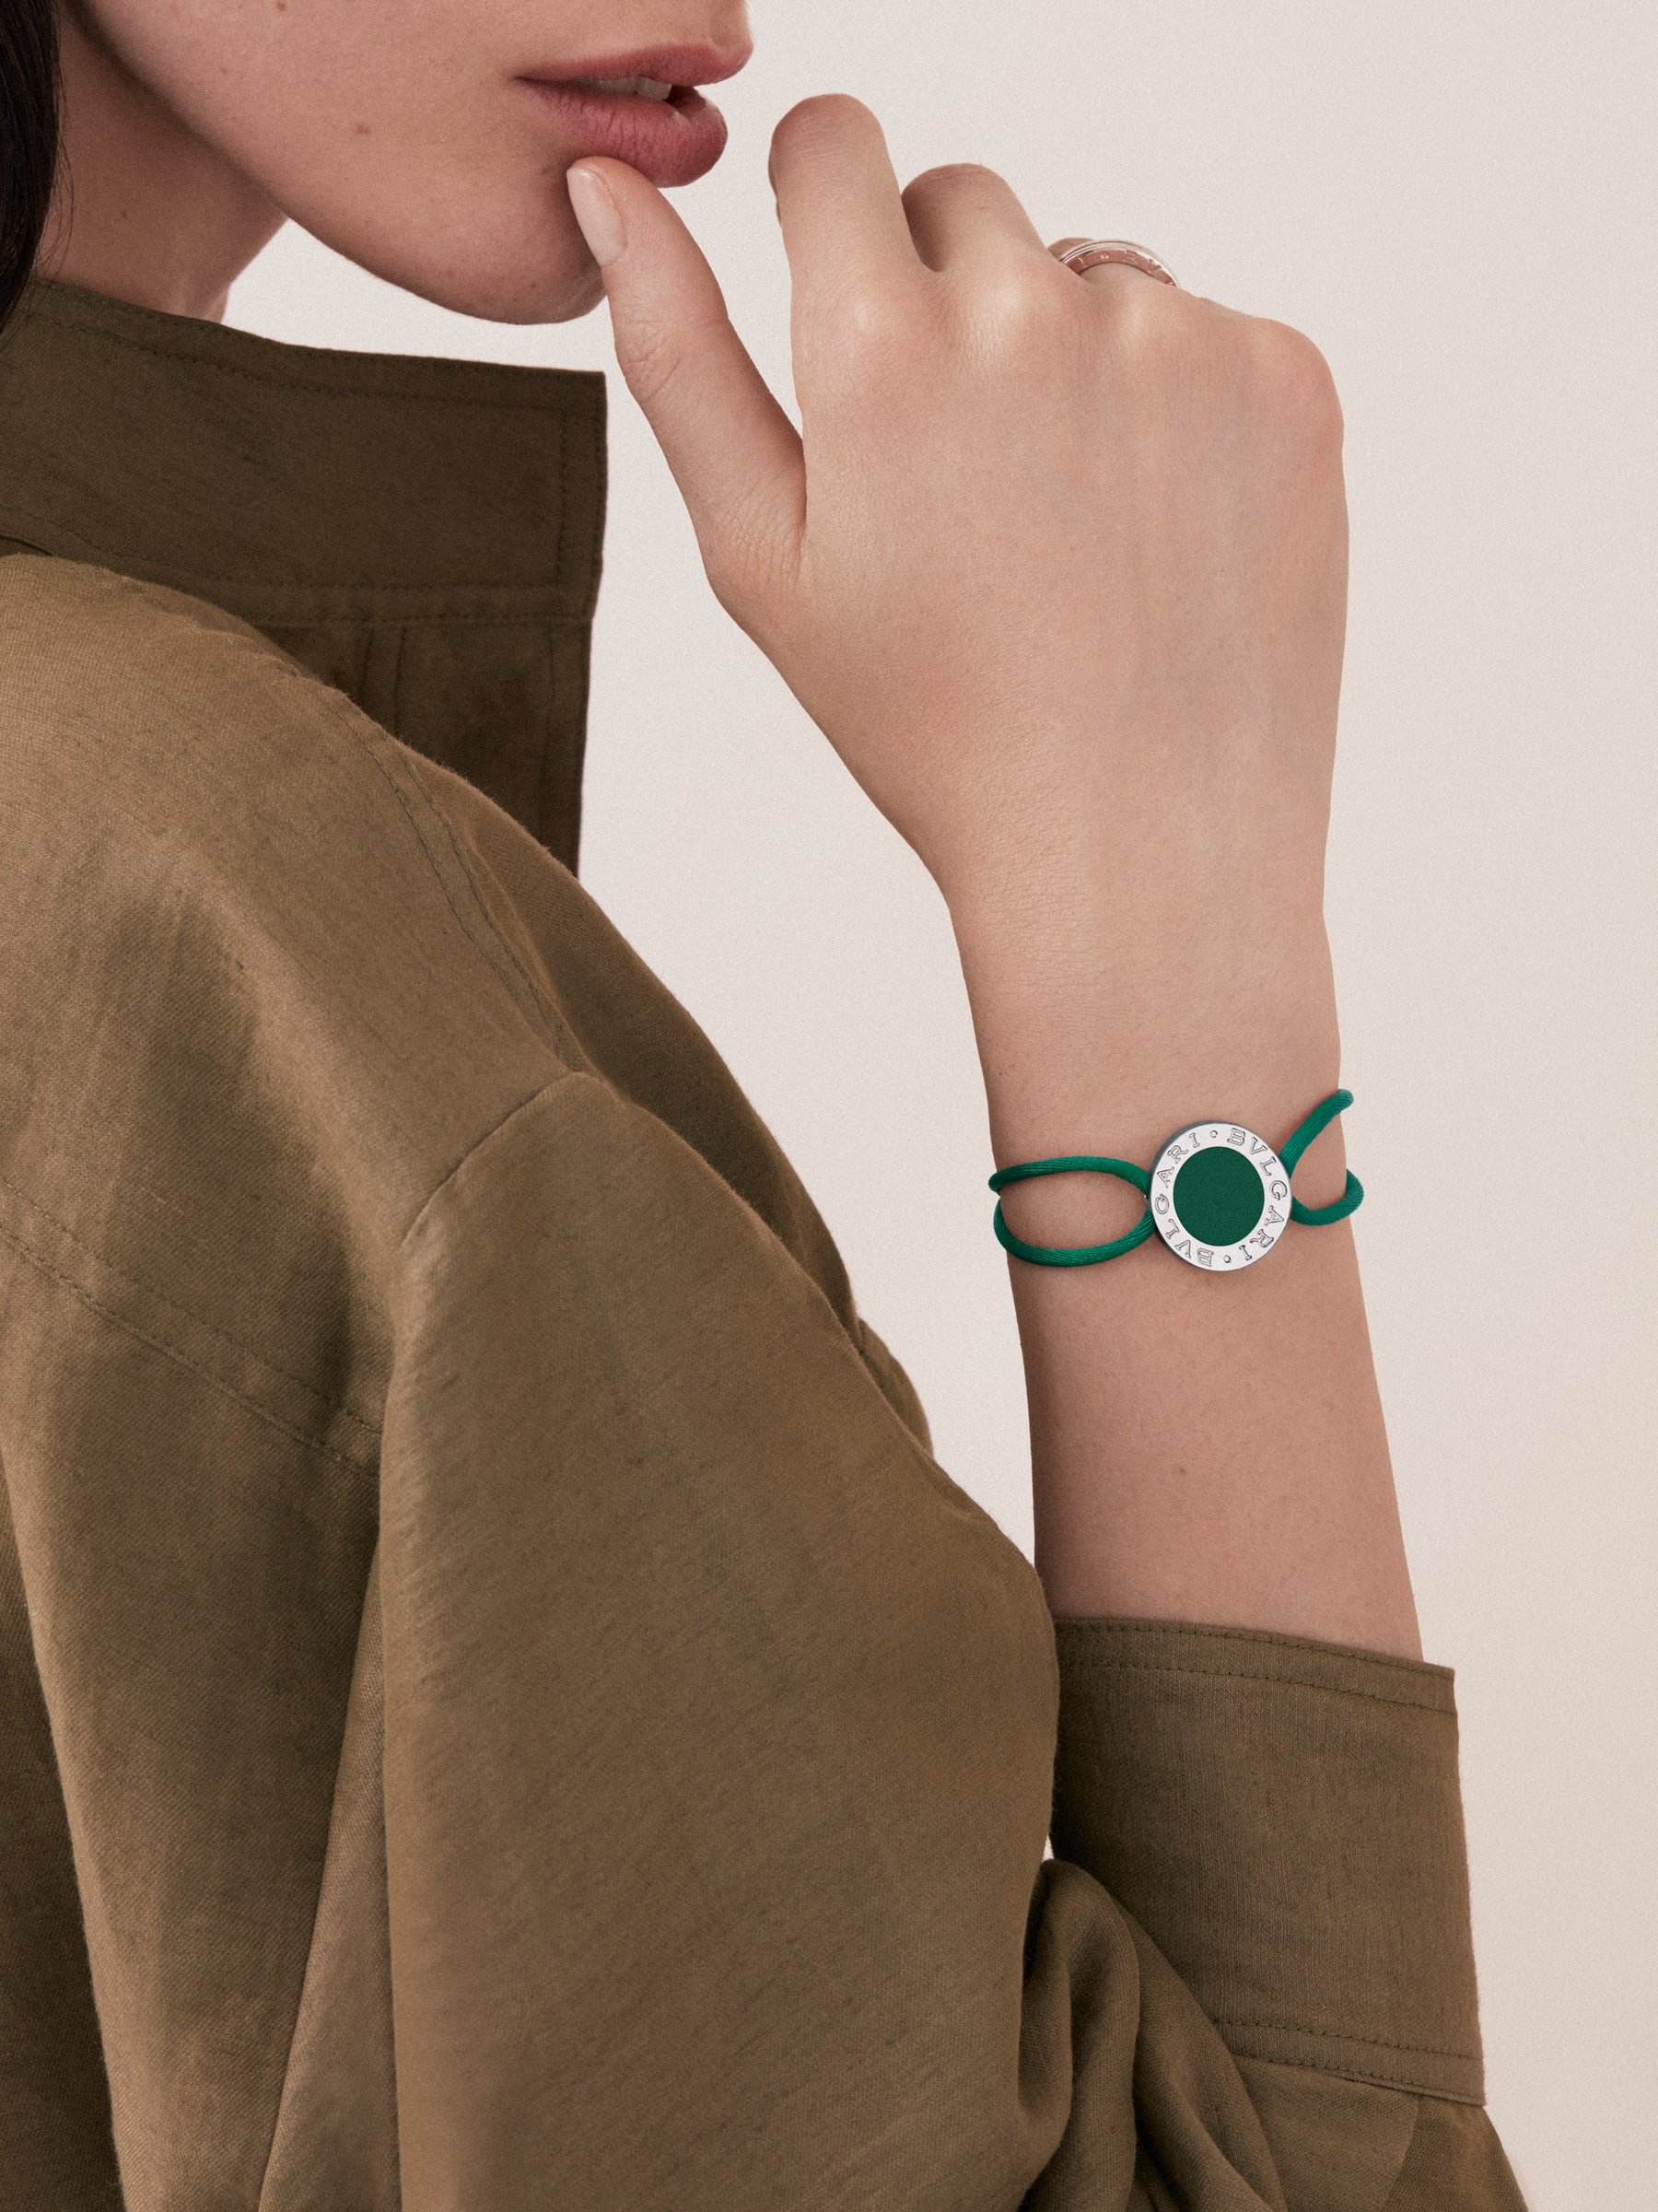 """BVLGARI BVLGARI"" bracelet in emerald green fabric with an iconic logo décor in sterling silver and black enamel. BRACLT-LUCKYUb image 2"